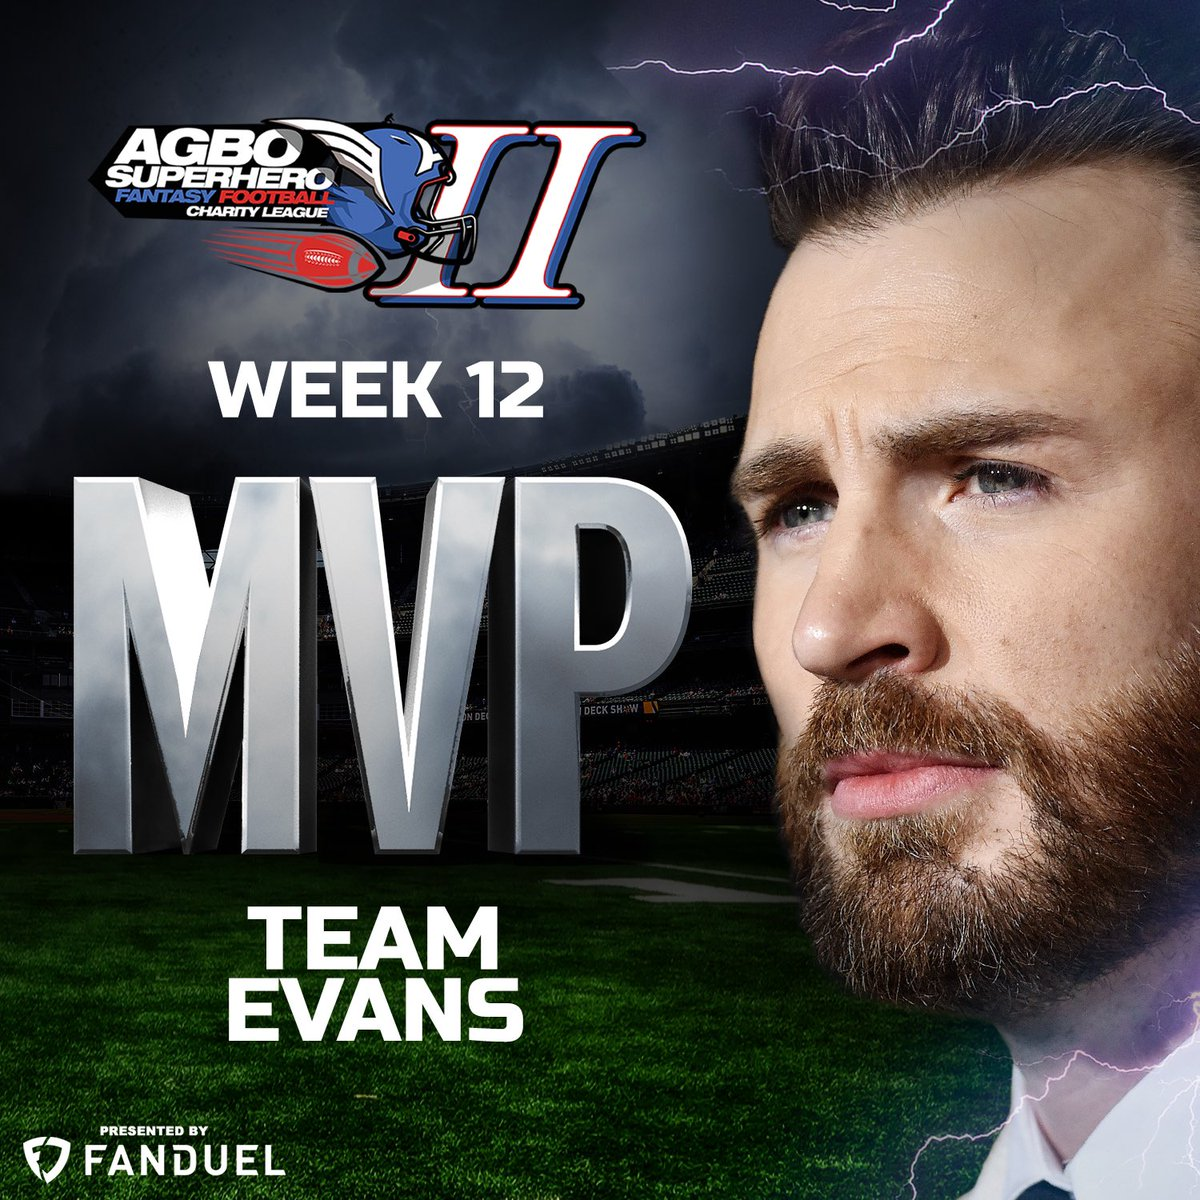 We knew he was worthy⚡️ also doesn't hurt when you have @KingHenry_2 on your fantasy football team. #TeamEvans we've been waiting for this one, TURN IT UP @ChrisEvans @chris_haven